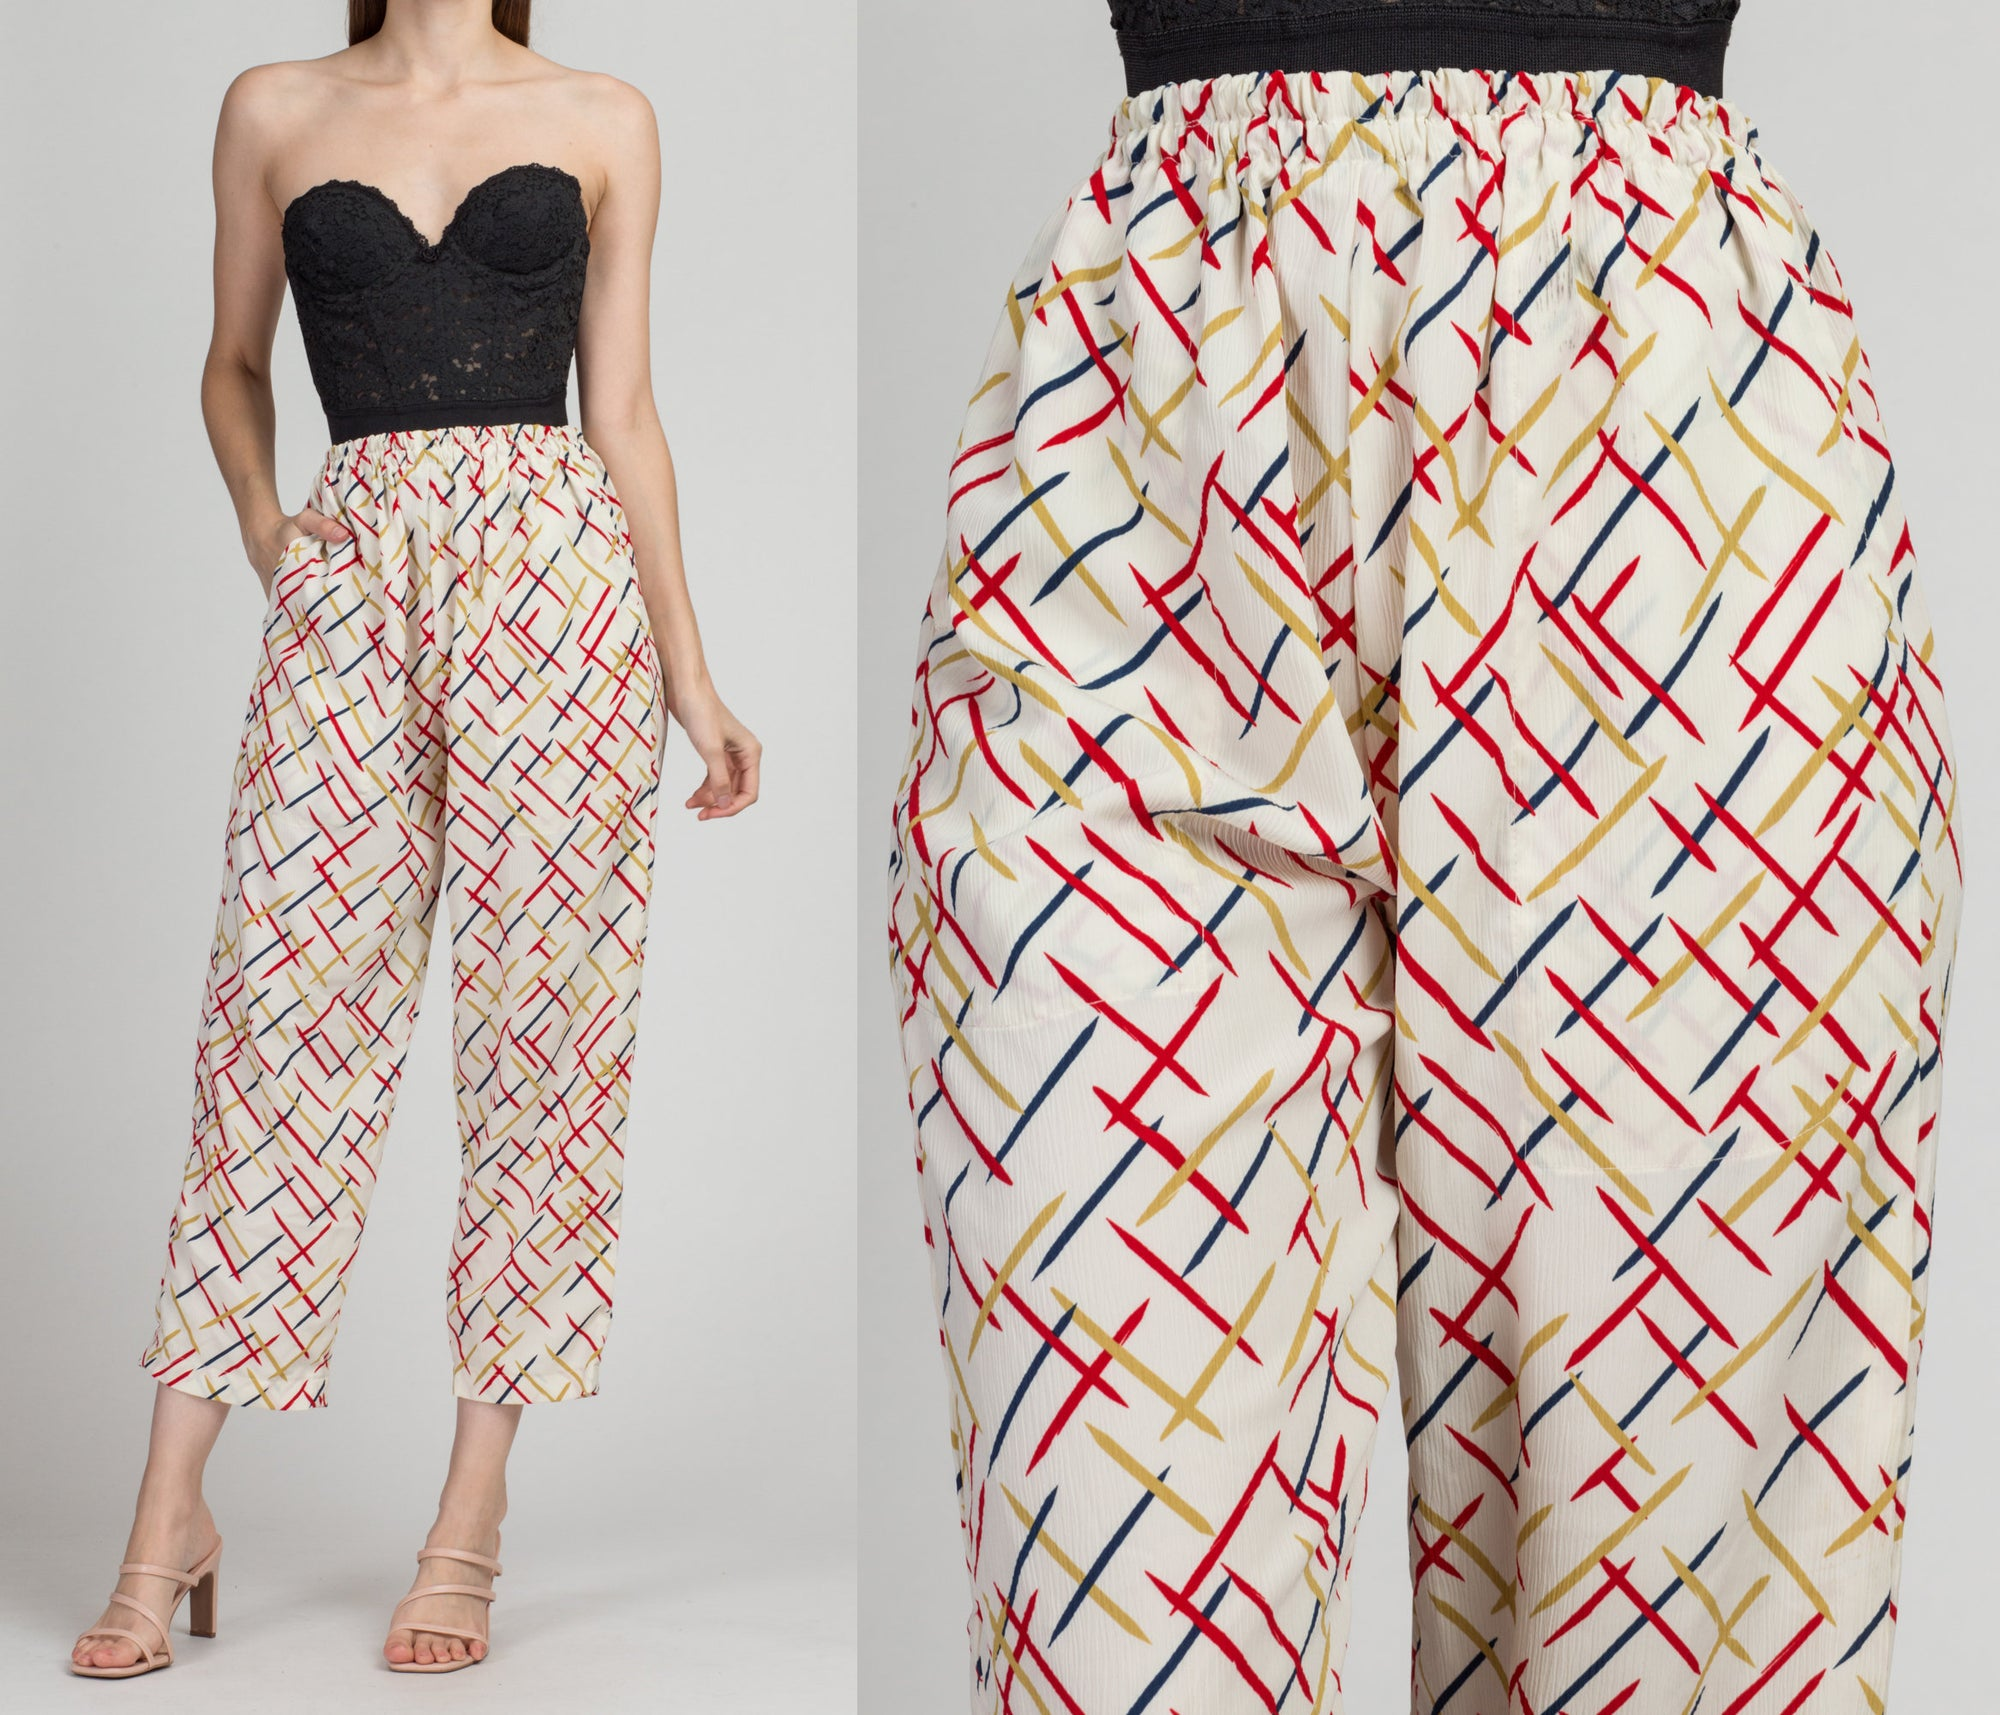 Vintage Geometric High Waist Pants - Small to Medium | 80s 90s Retro Cropped Ankle Lounge Pants